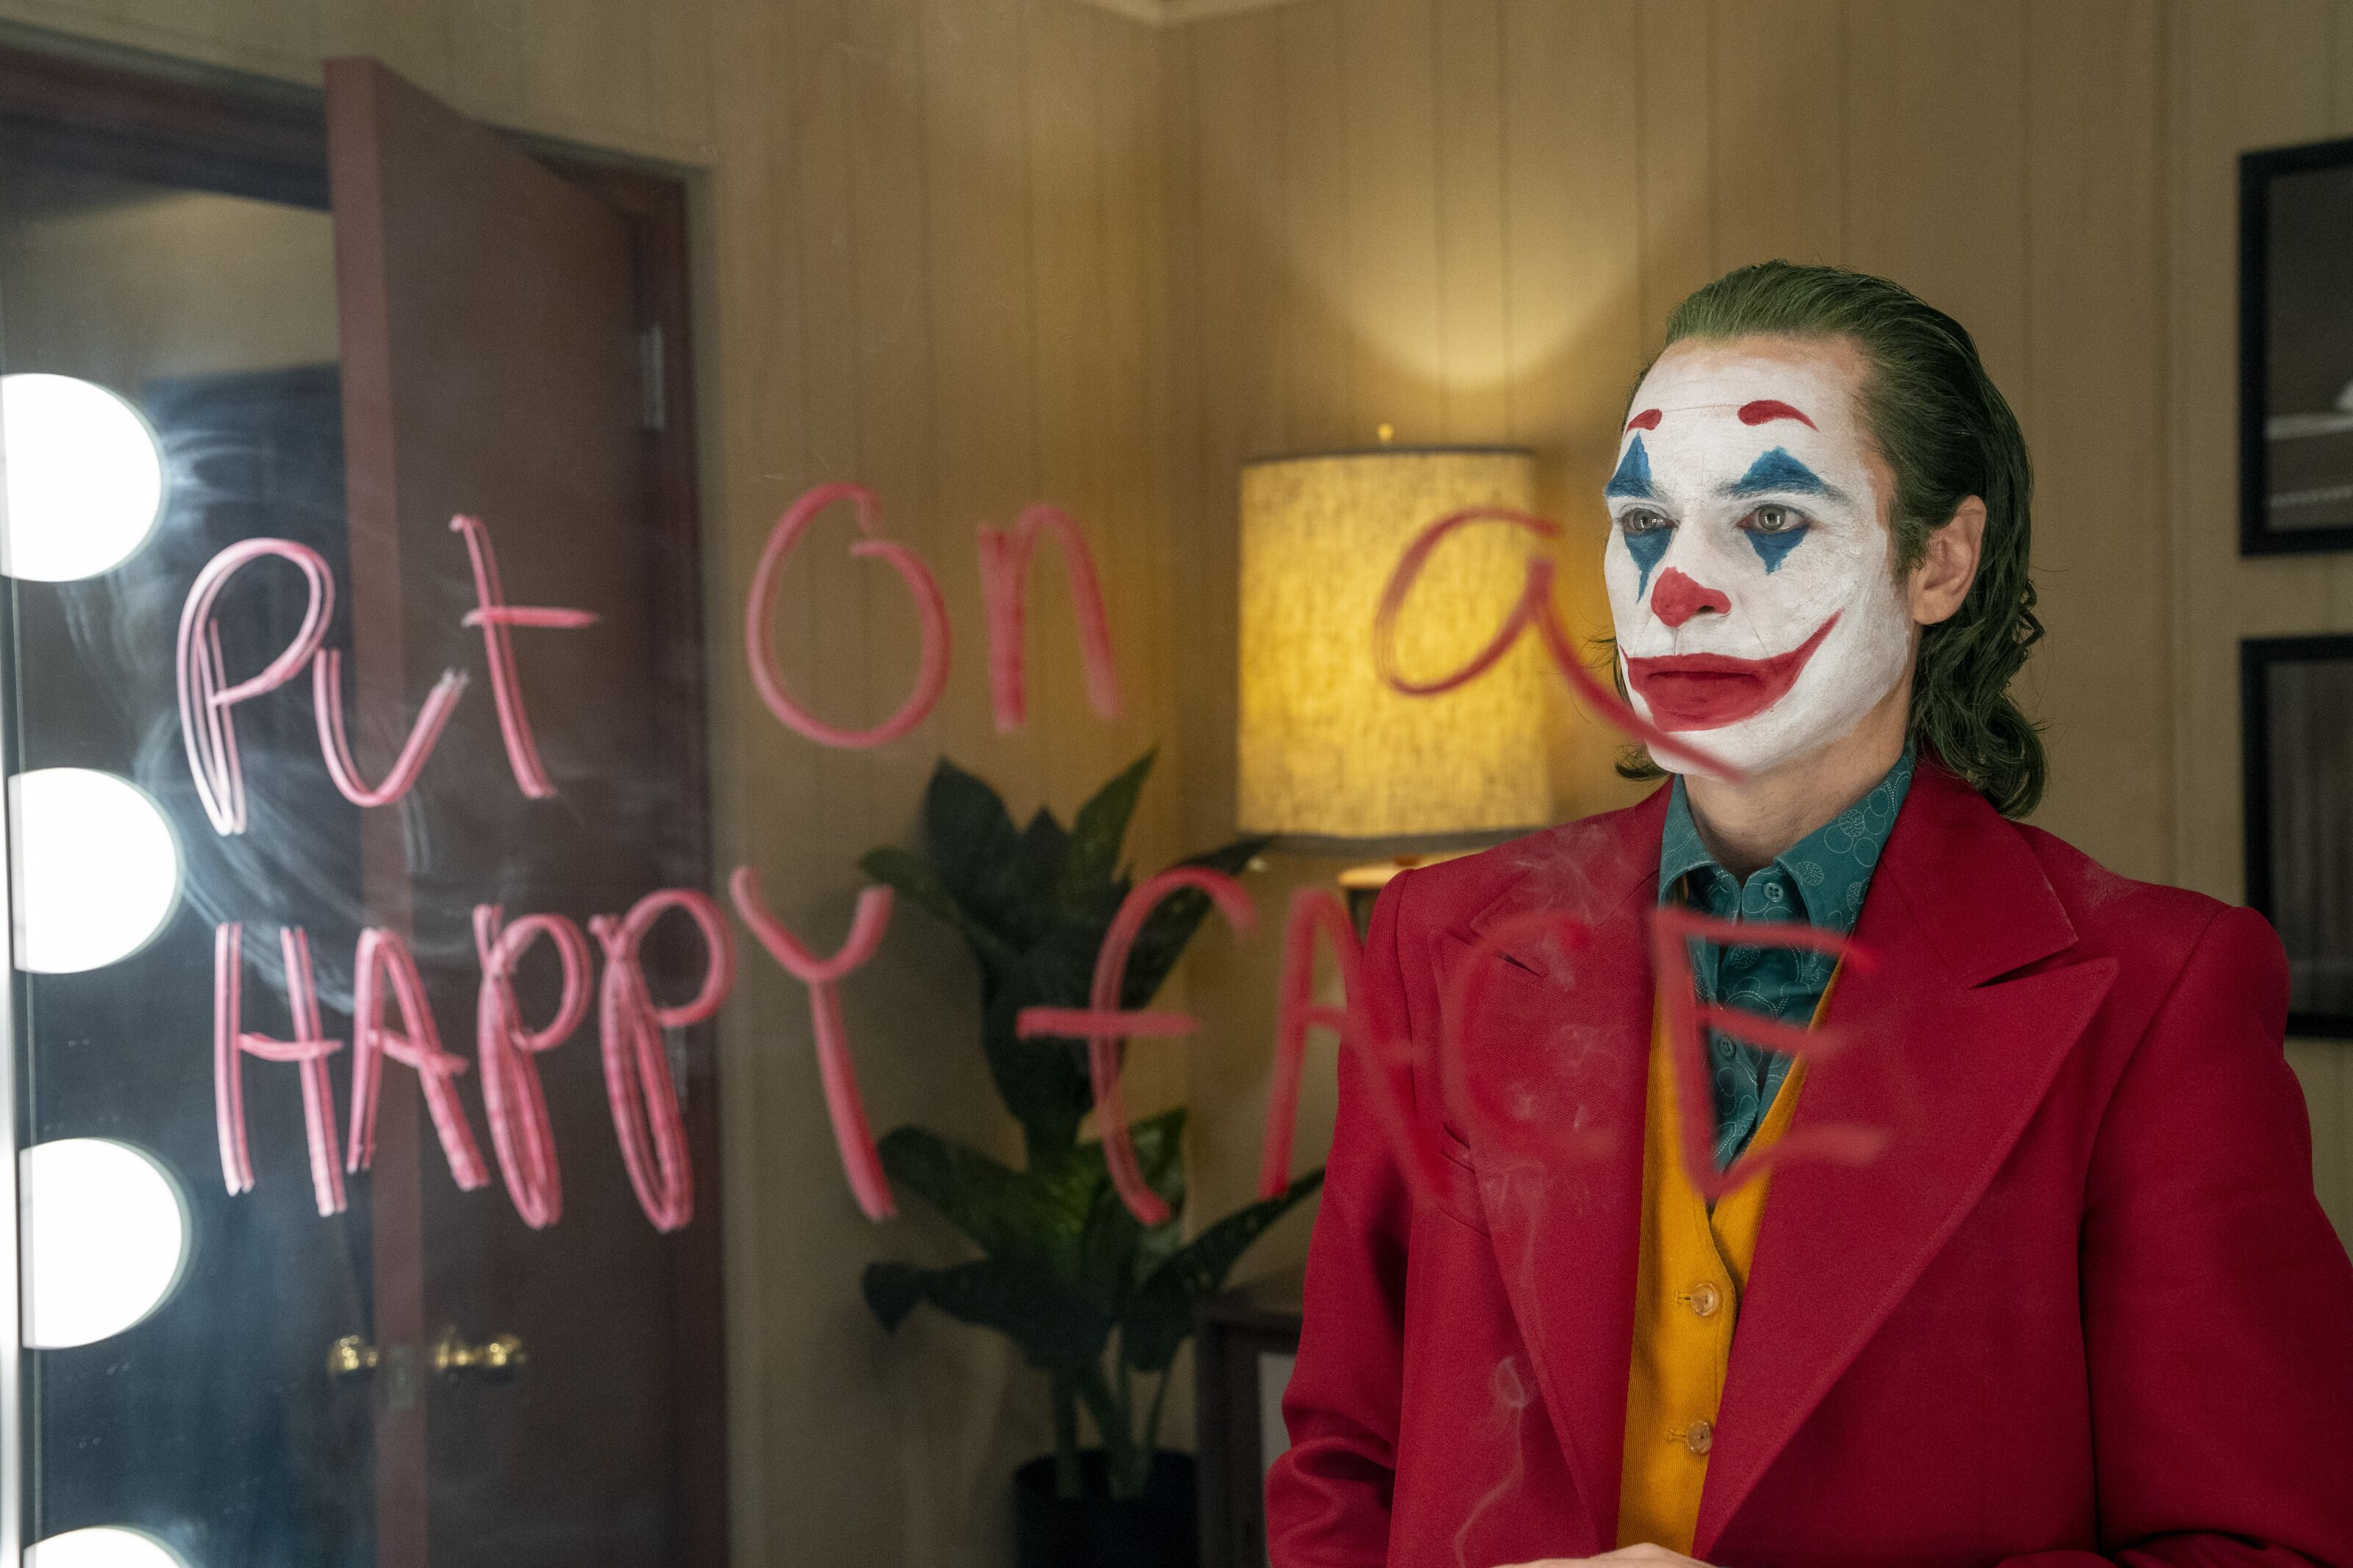 Joker: The big question we have after watching the movie